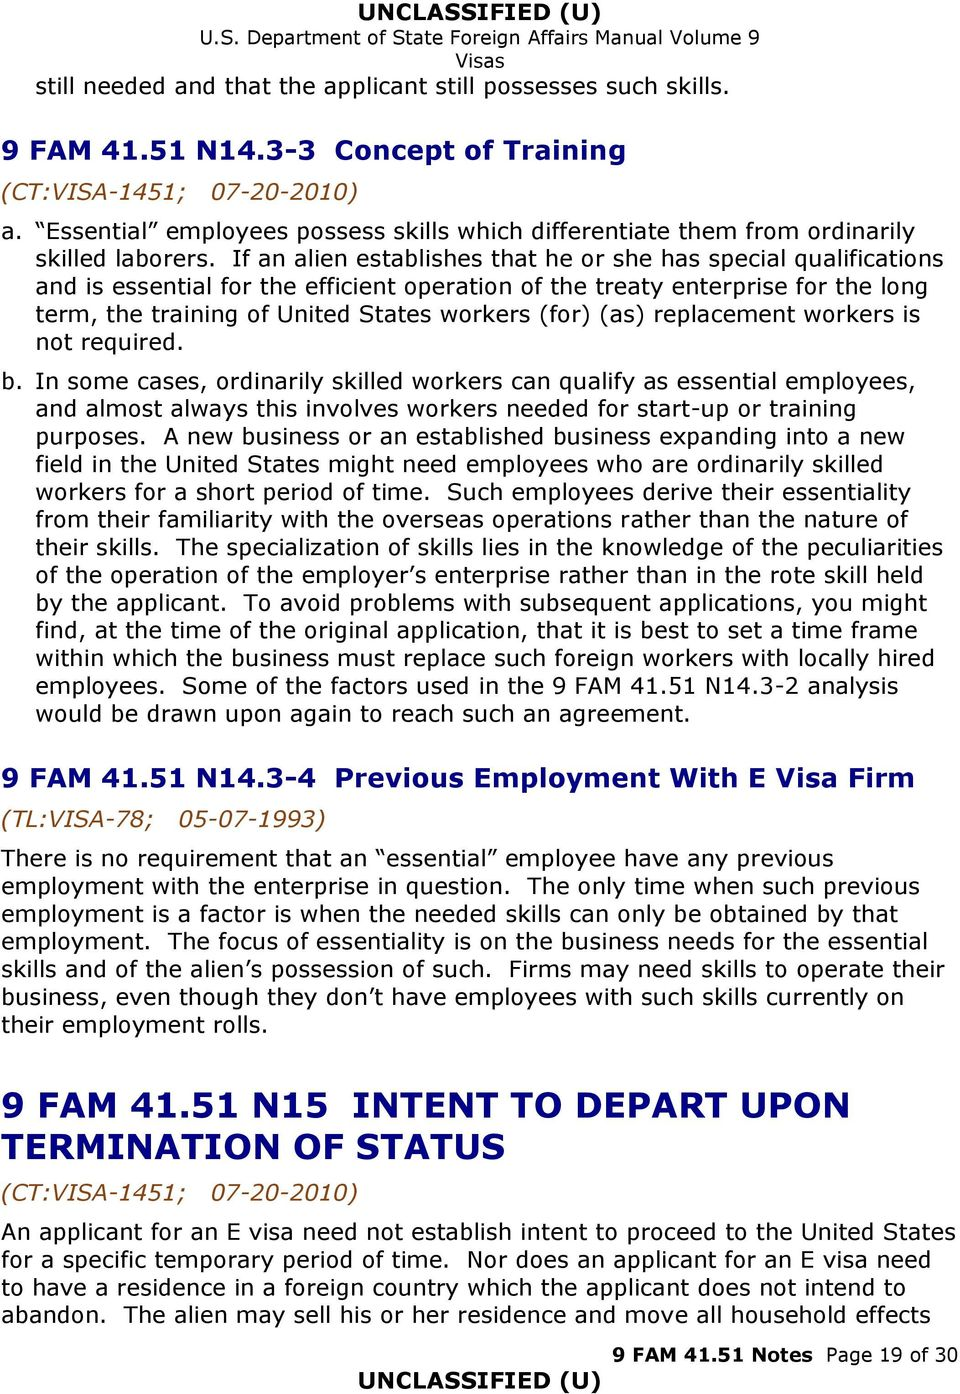 If an alien establishes that he or she has special qualifications and is essential for the efficient operation of the treaty enterprise for the long term, the training of United States workers (for)